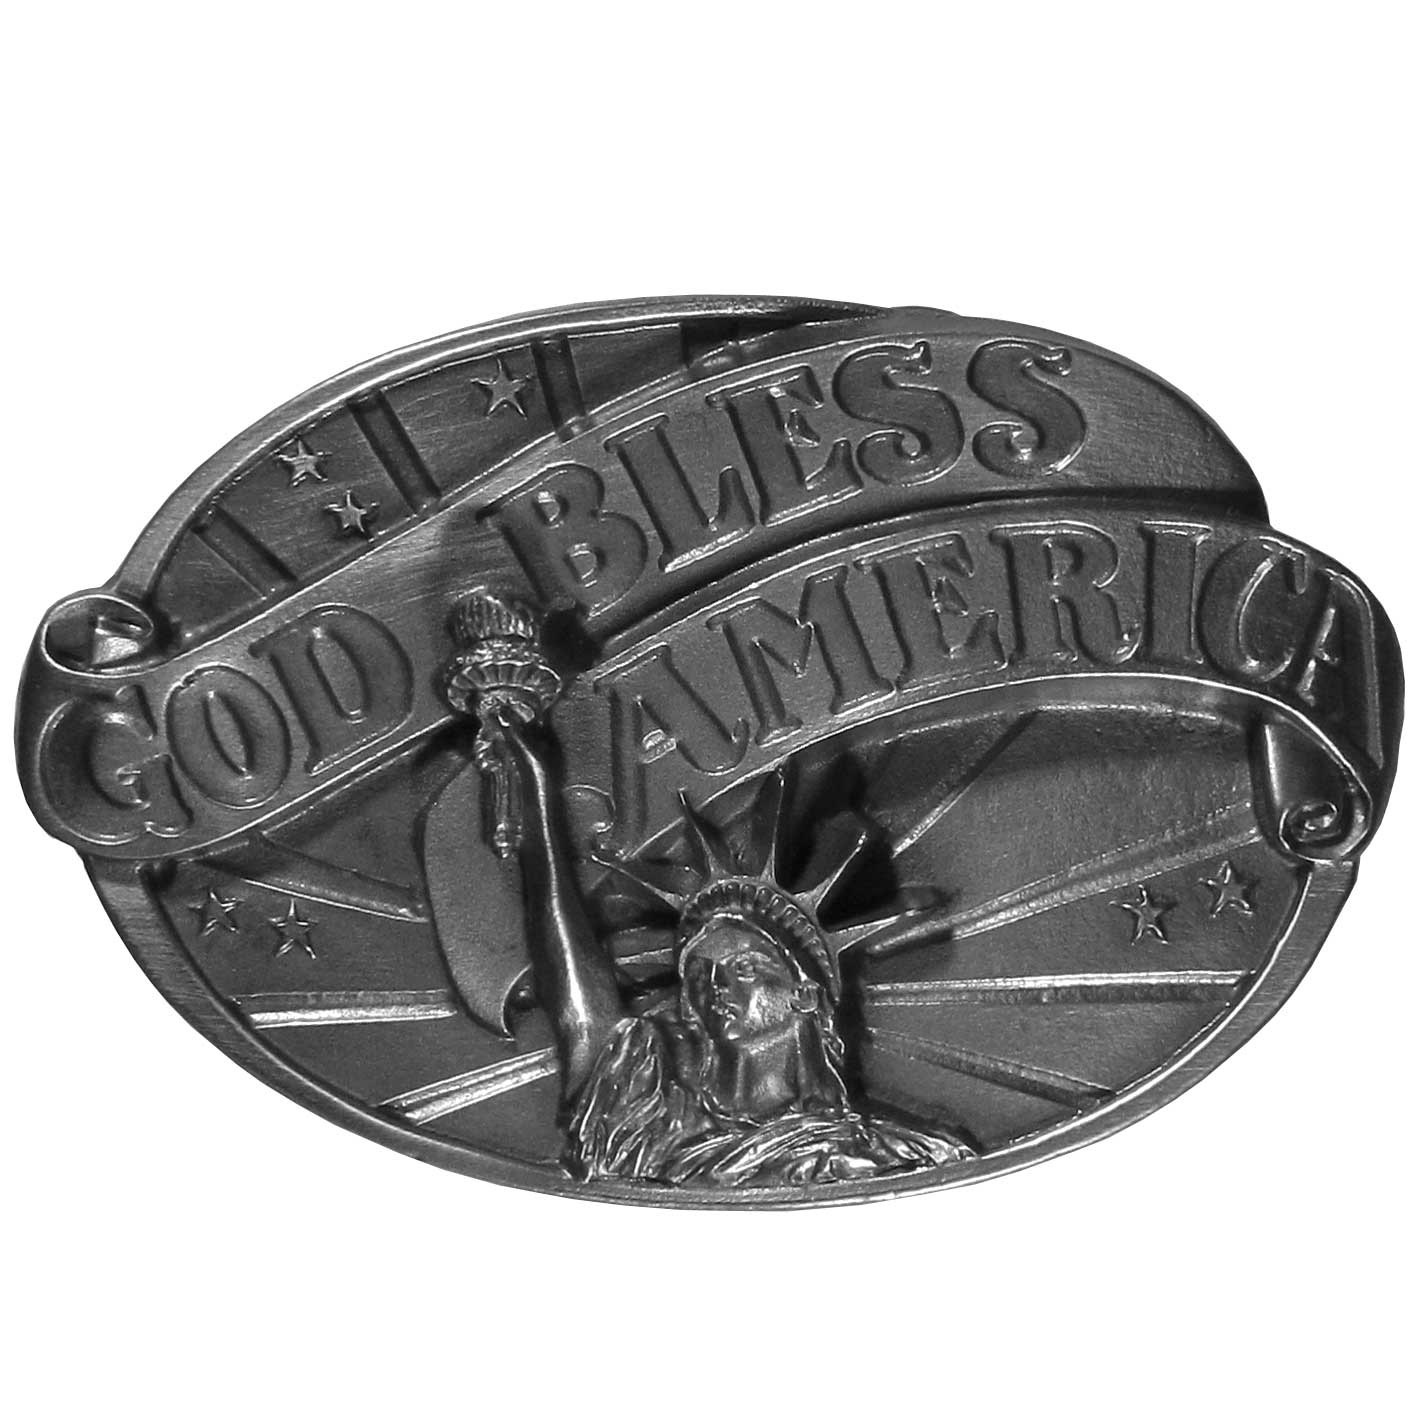 God Bless America Antiqued Belt Buckle - Fully cast metal belt buckle with exceptional detail. The buckle features the Statue of Liberty with a God Bless America ribbon and fits belts up to 2 inches.